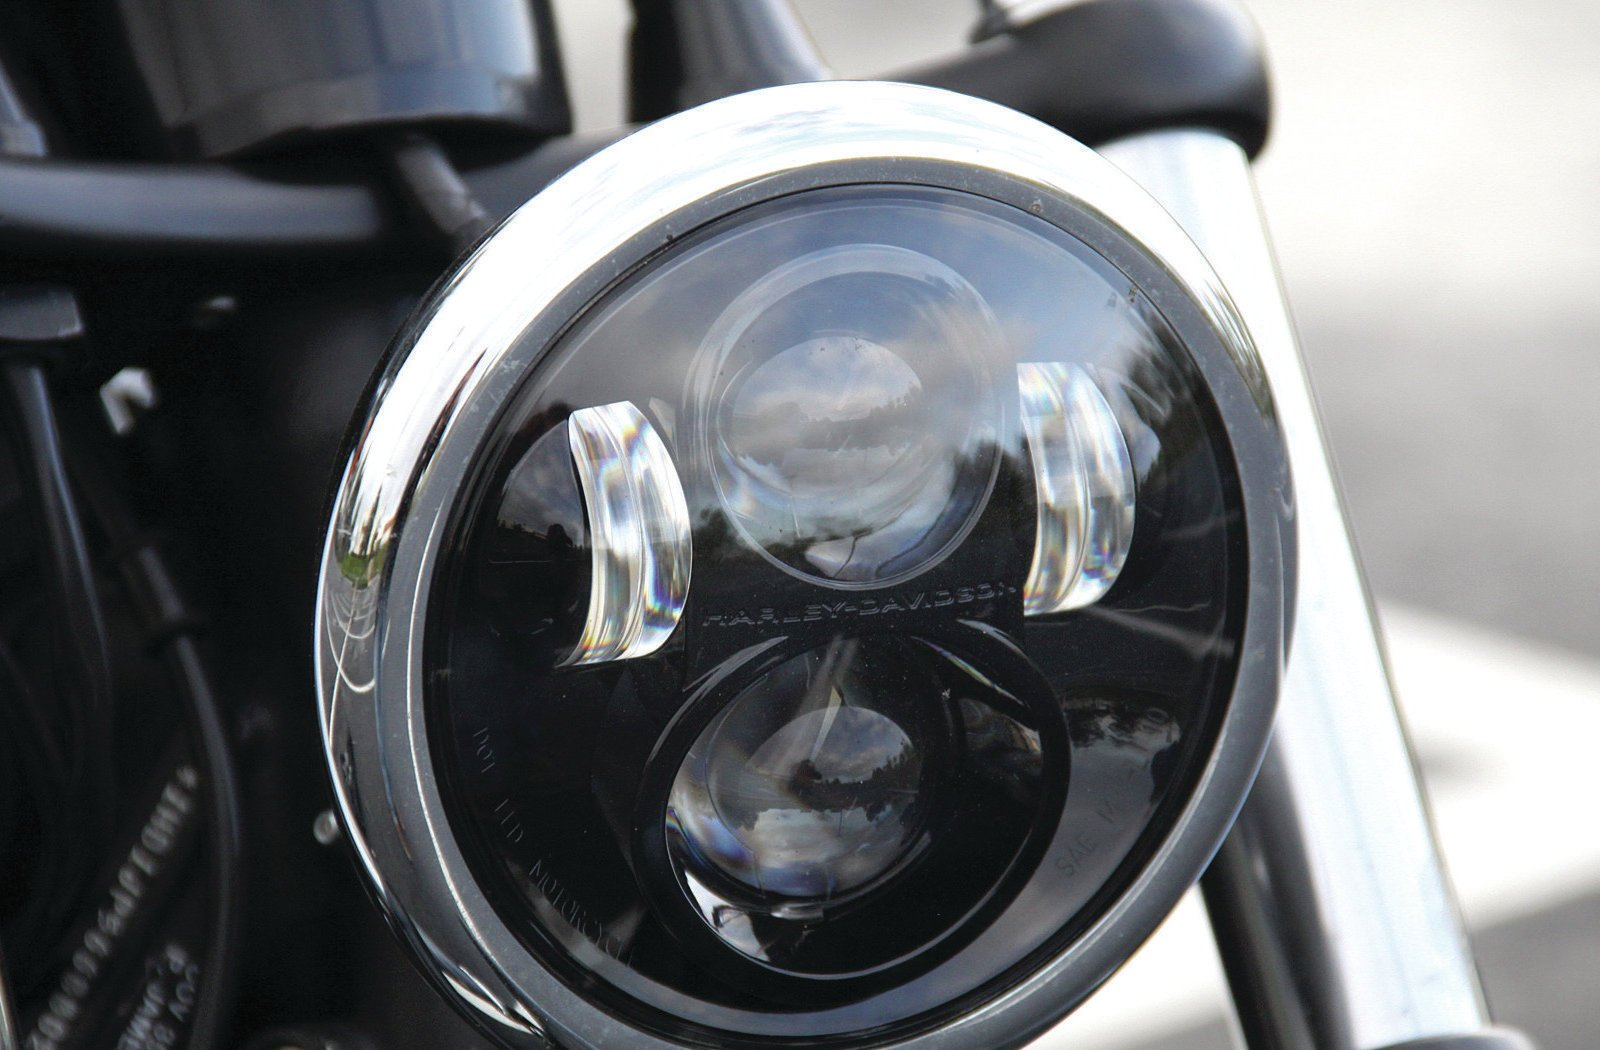 https://s1.cdn.autoevolution.com/images/news/gallery/harley-davidson-daymaker-led-headlights_1.jpg